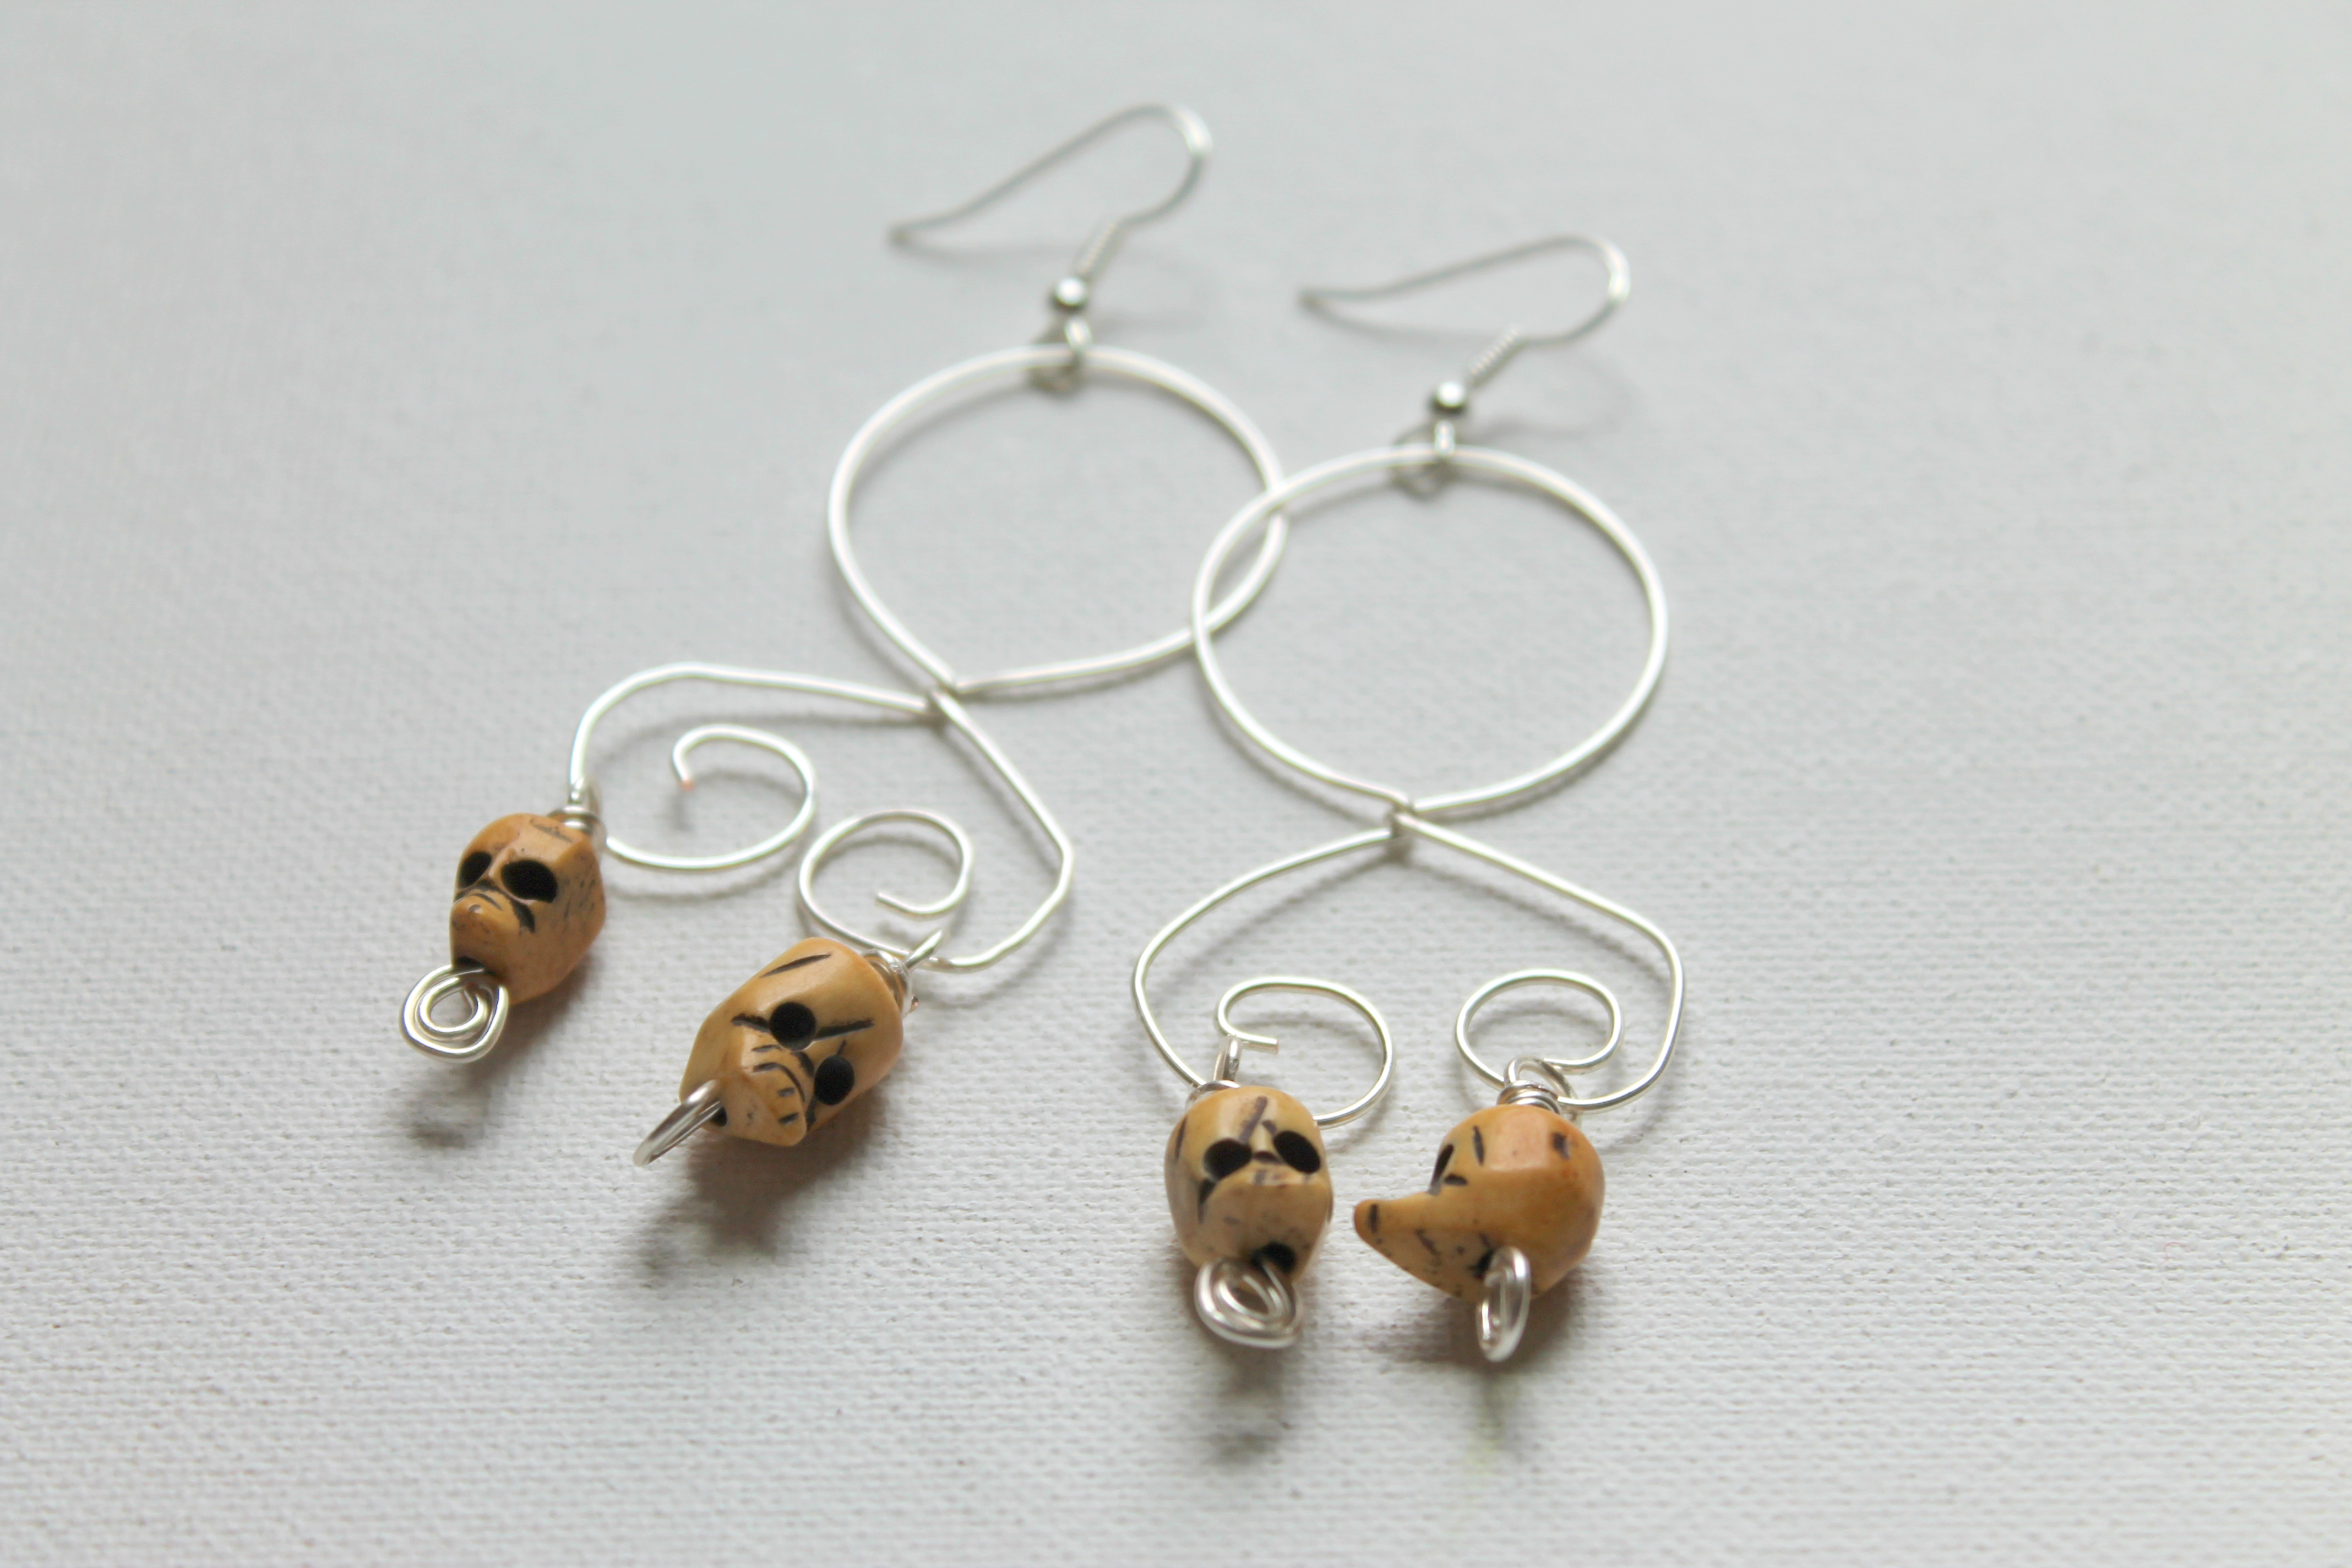 earring wire tutorial | Emerging Creatively Jewelry Tutorials